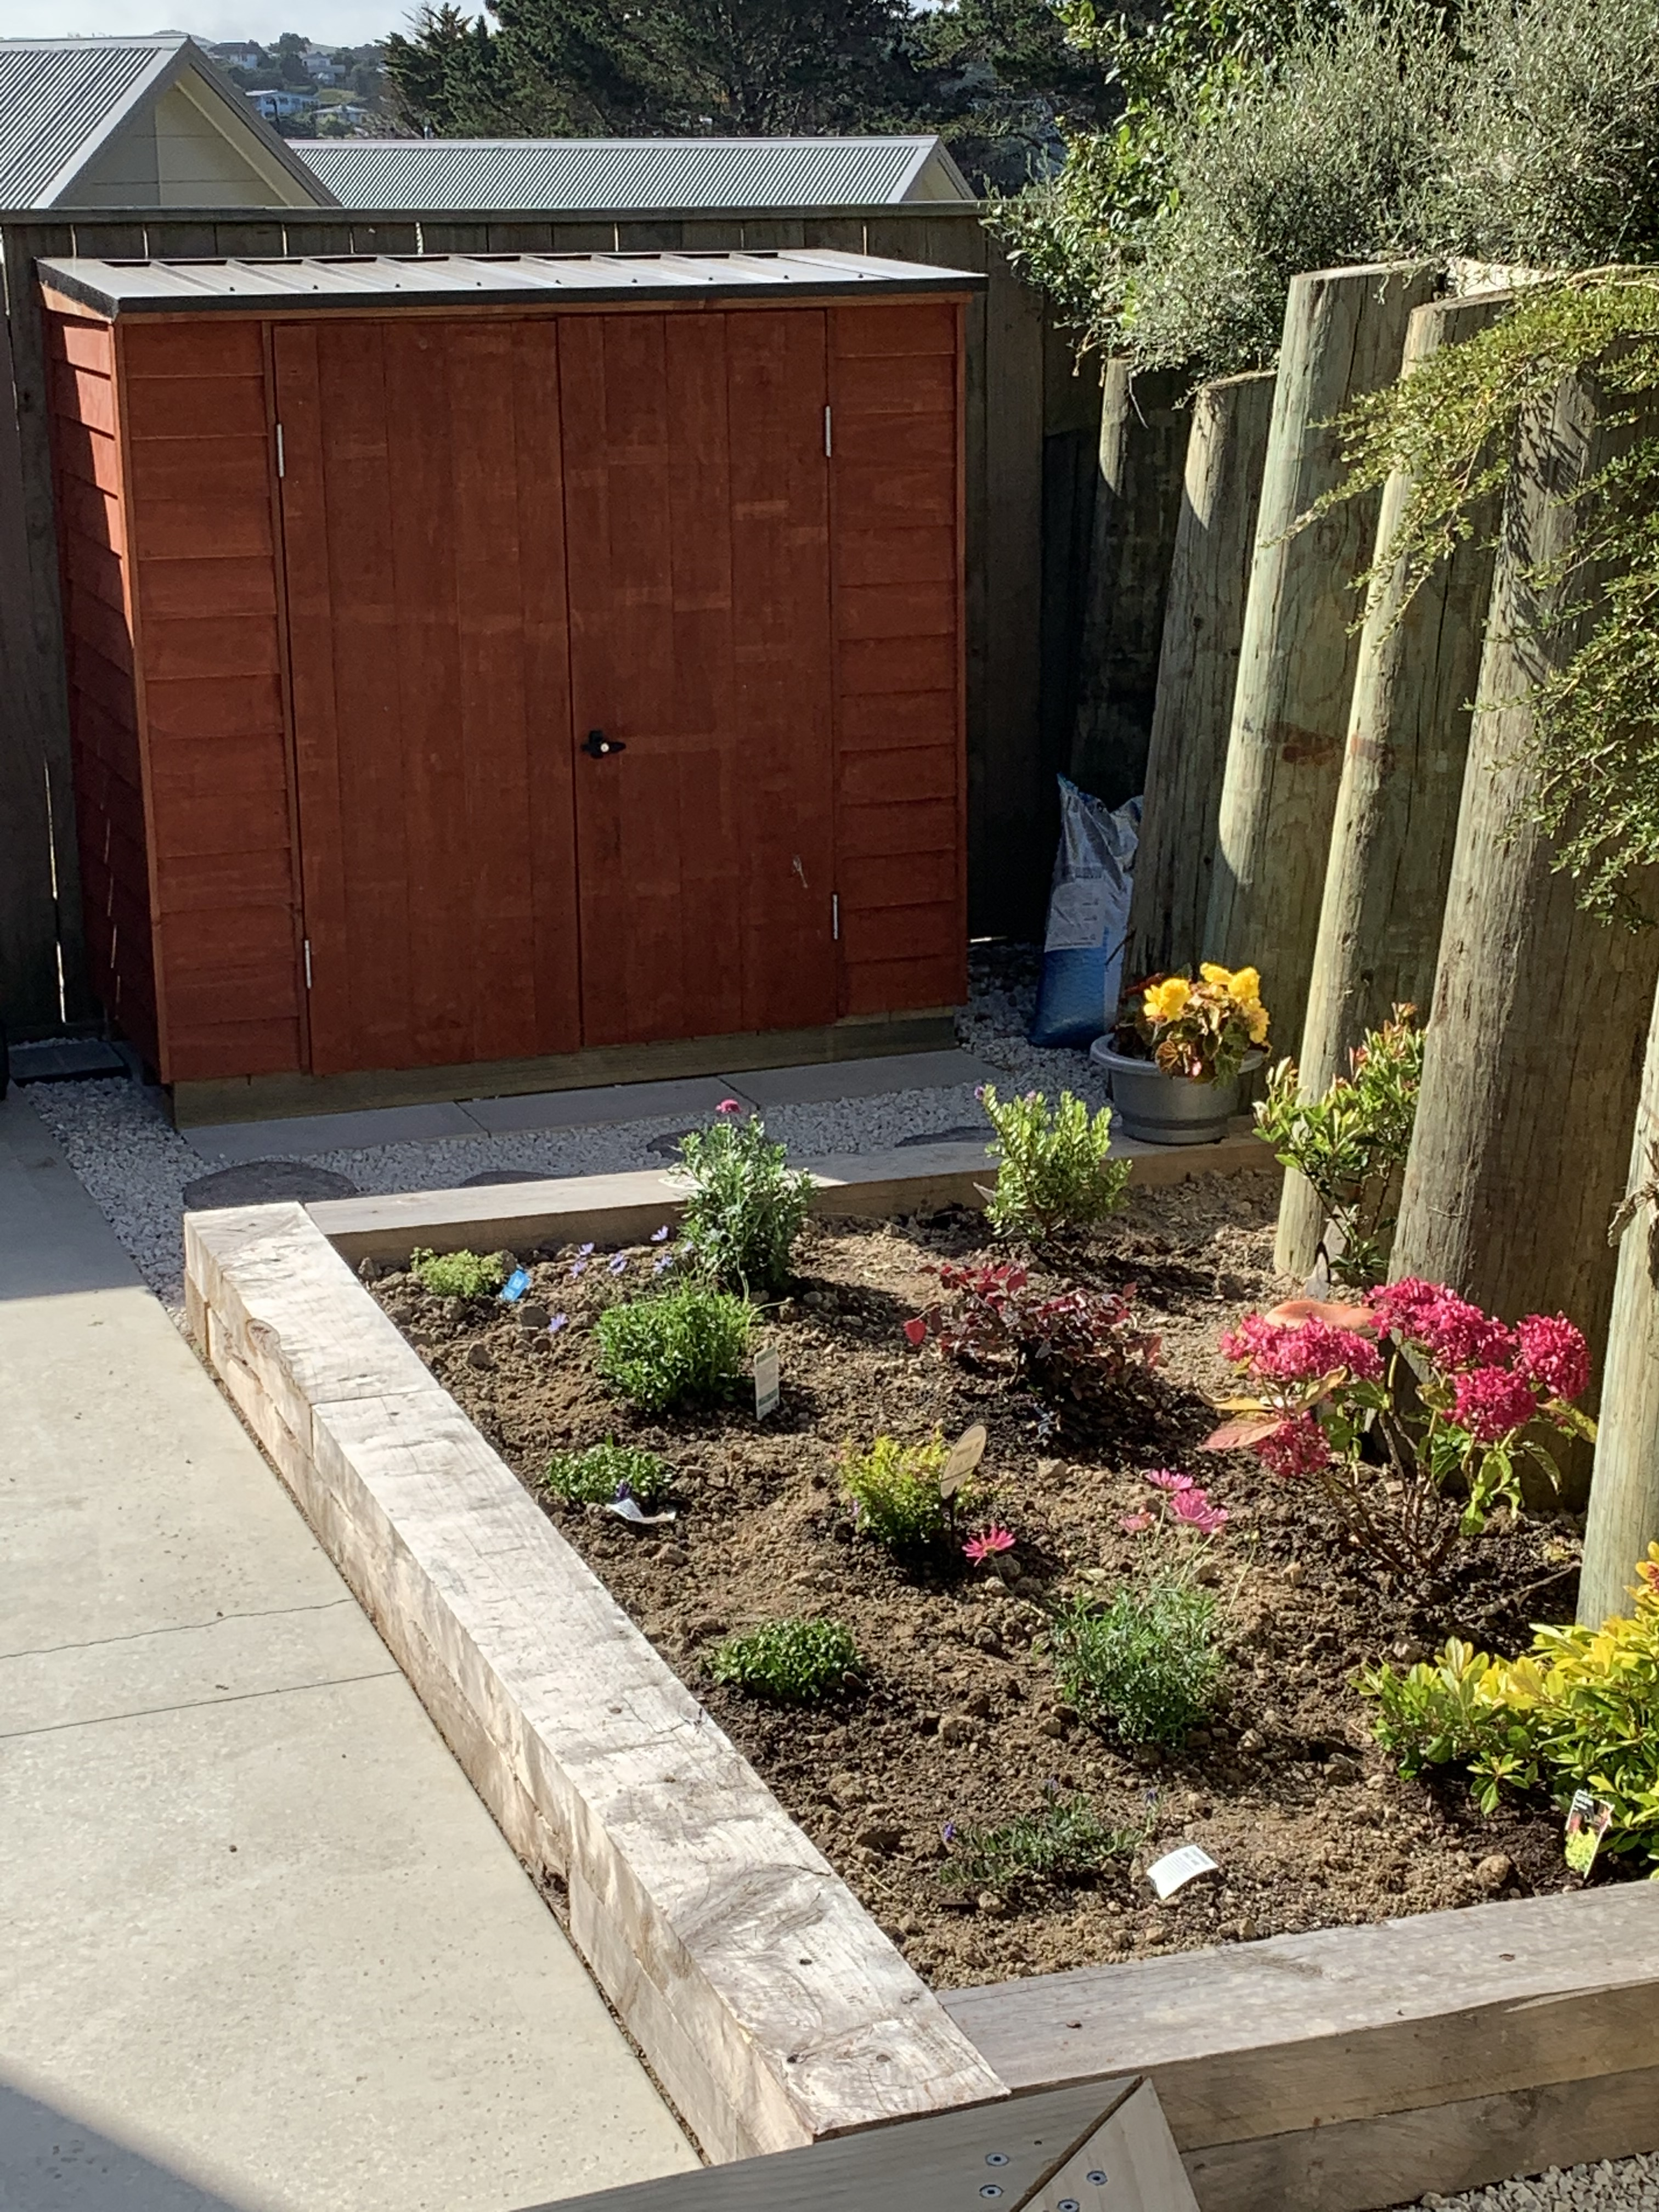 Wellington townhouse kitset shed, raised macrocarpa sleepers flower garden, pavers and ground cover - by Grumpy Bob